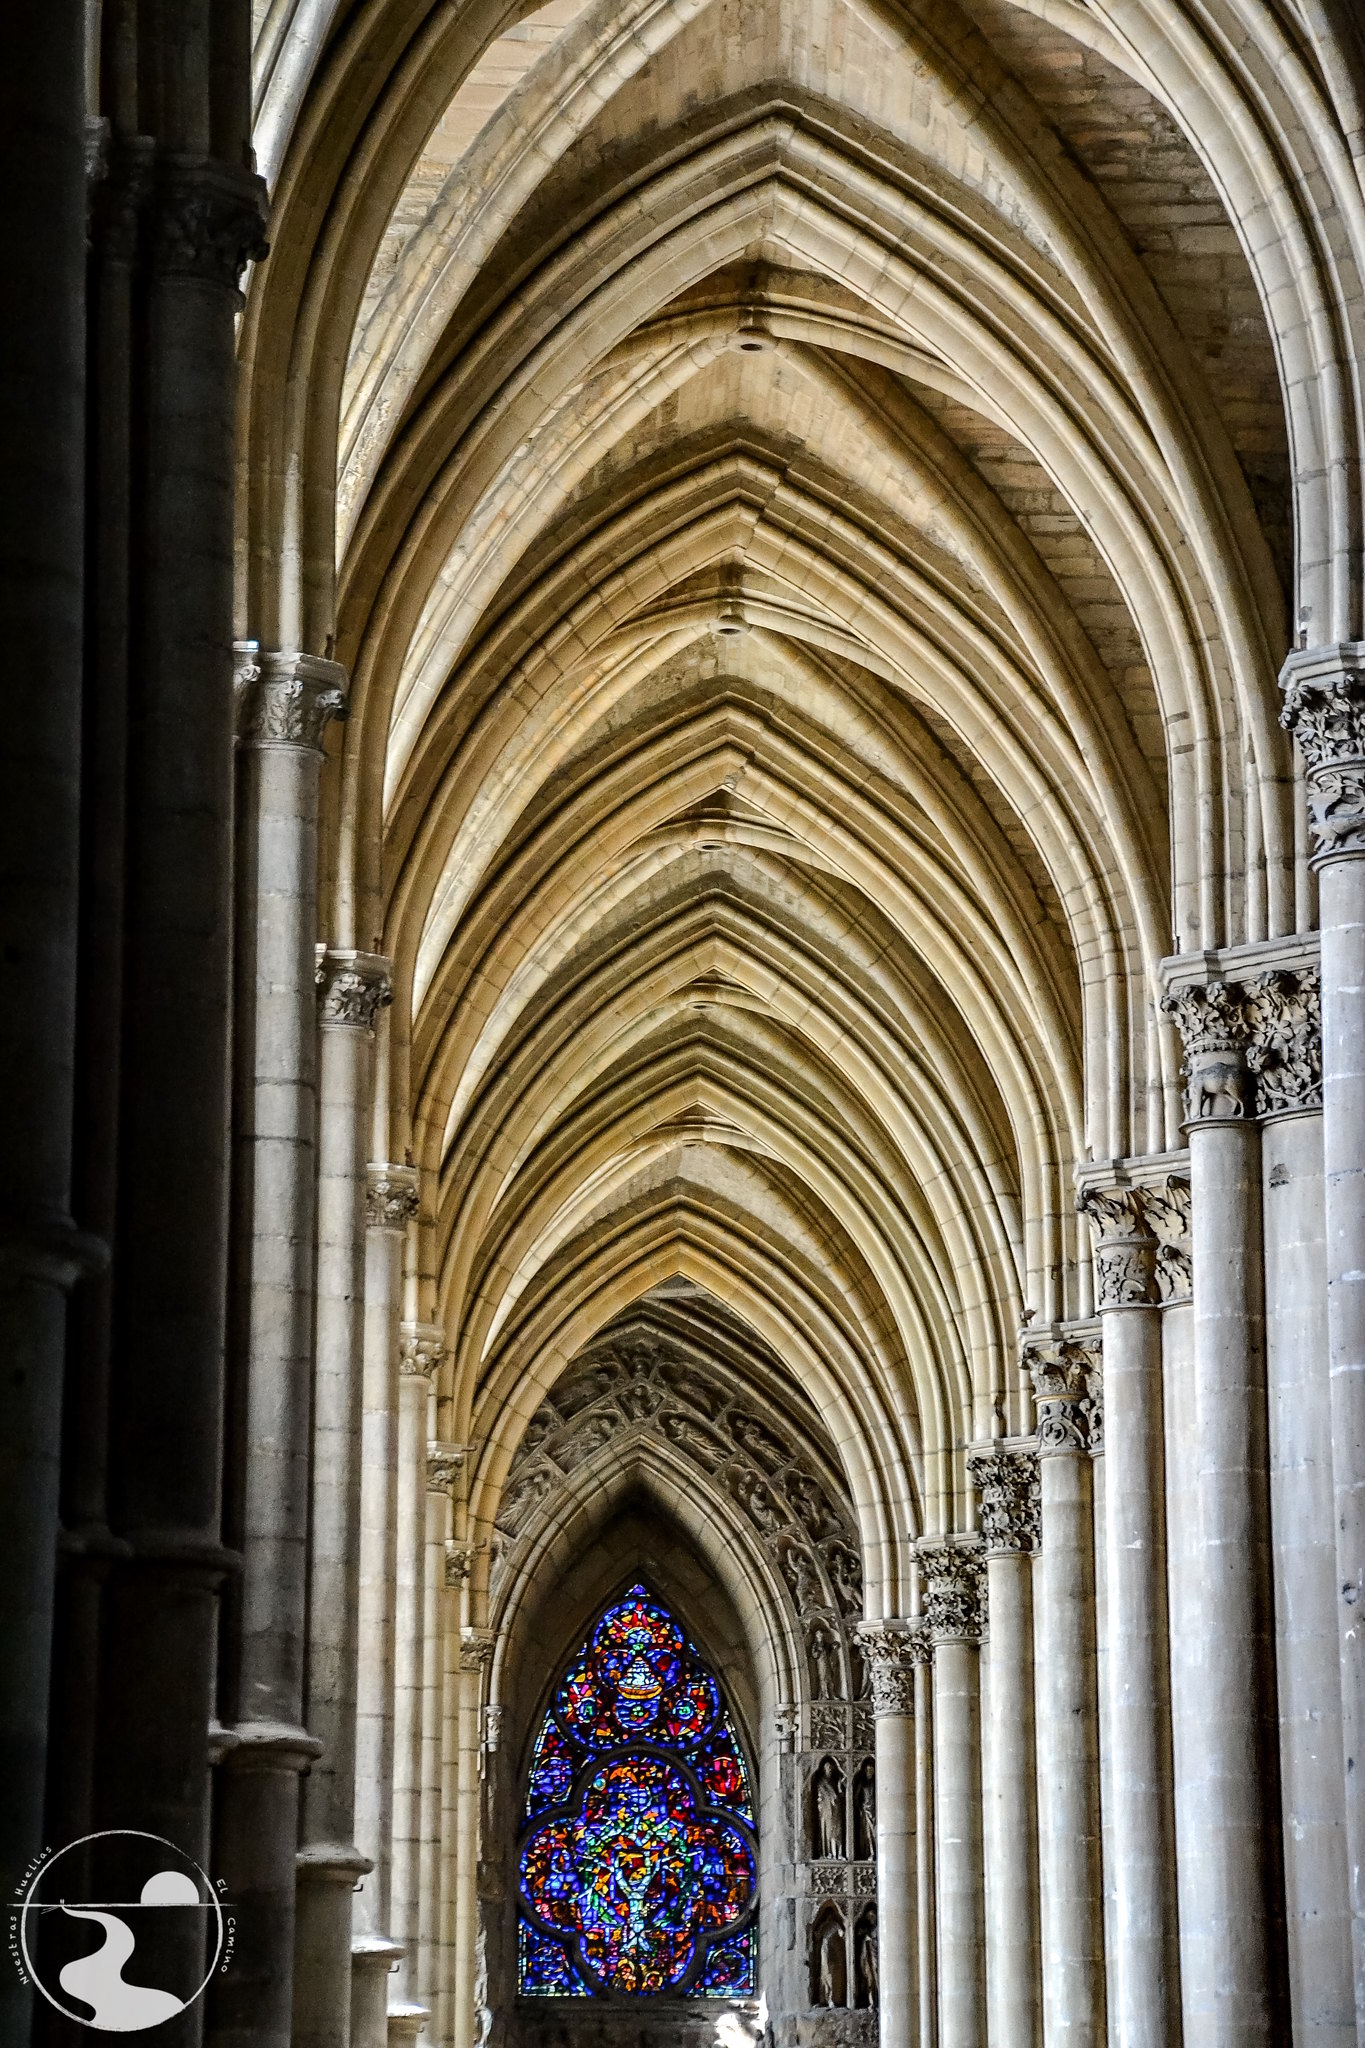 Interior de la catedral de Reims